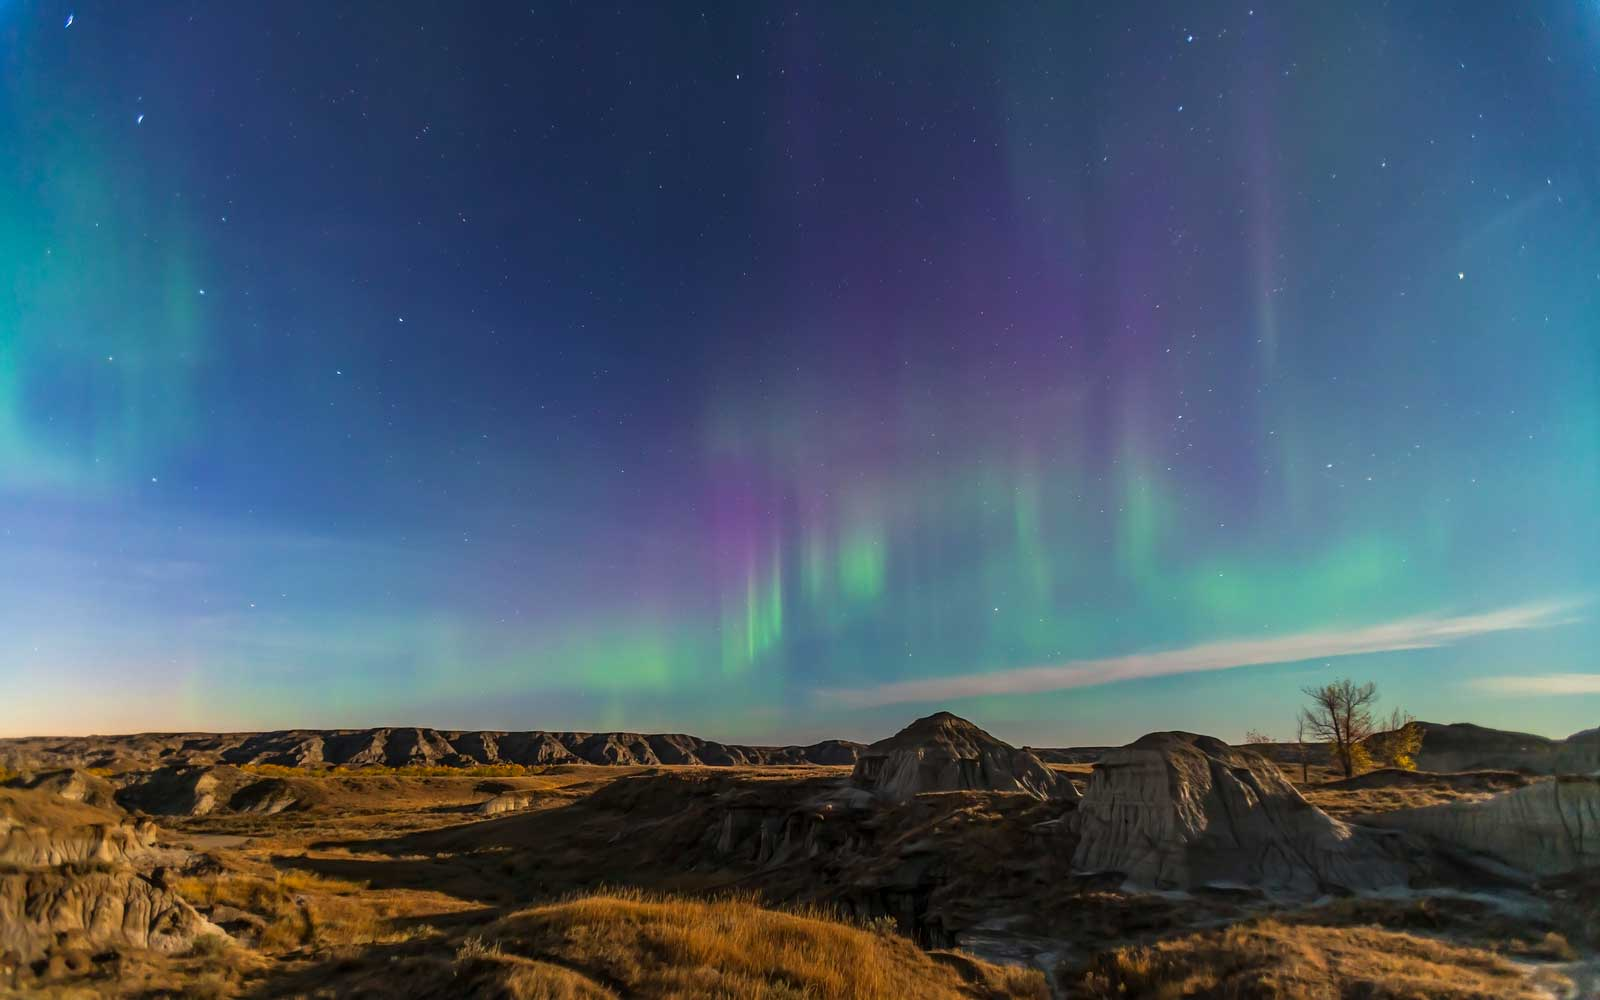 Aurora borealis over the badlands of Dinosaur Provincial Park, Alberta, Canada.